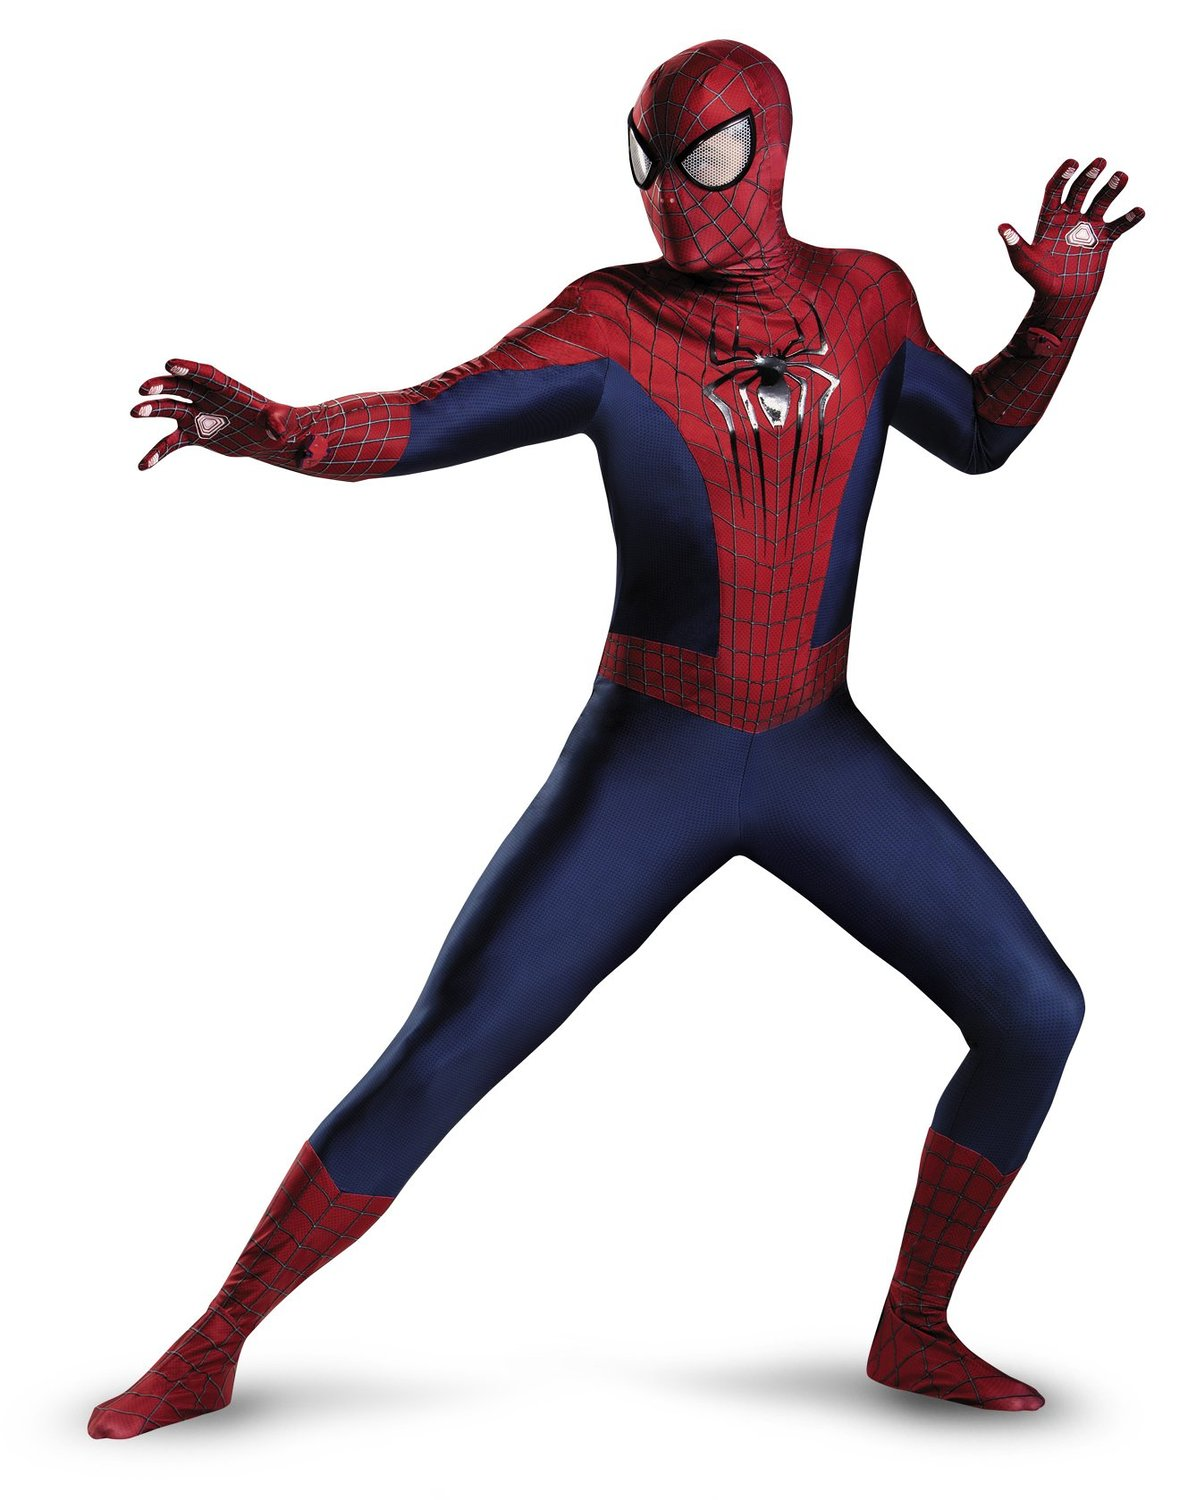 Disguise Men's Marvel The Amazing Movie 2 Spider-Man Theatrical Adult Costume, Blue/Red/Black, XX-Large/50-52